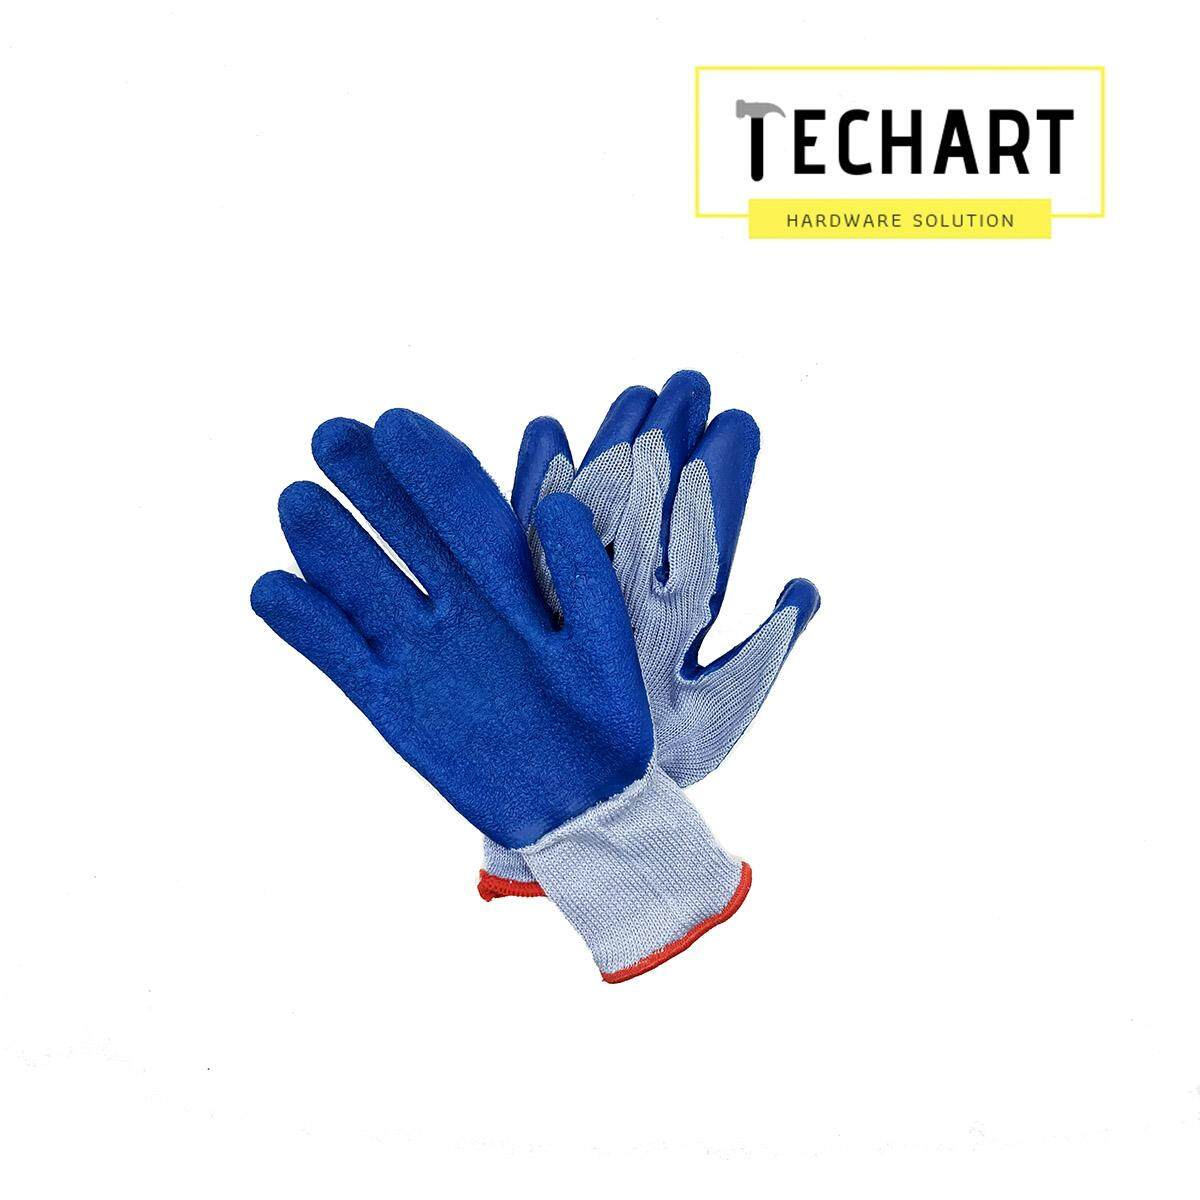 [ VALUE PACK ] 3 PAIRS High Quality Blue Anti-slip Gloves Extra Strong Grip Working Industrial Glvoes